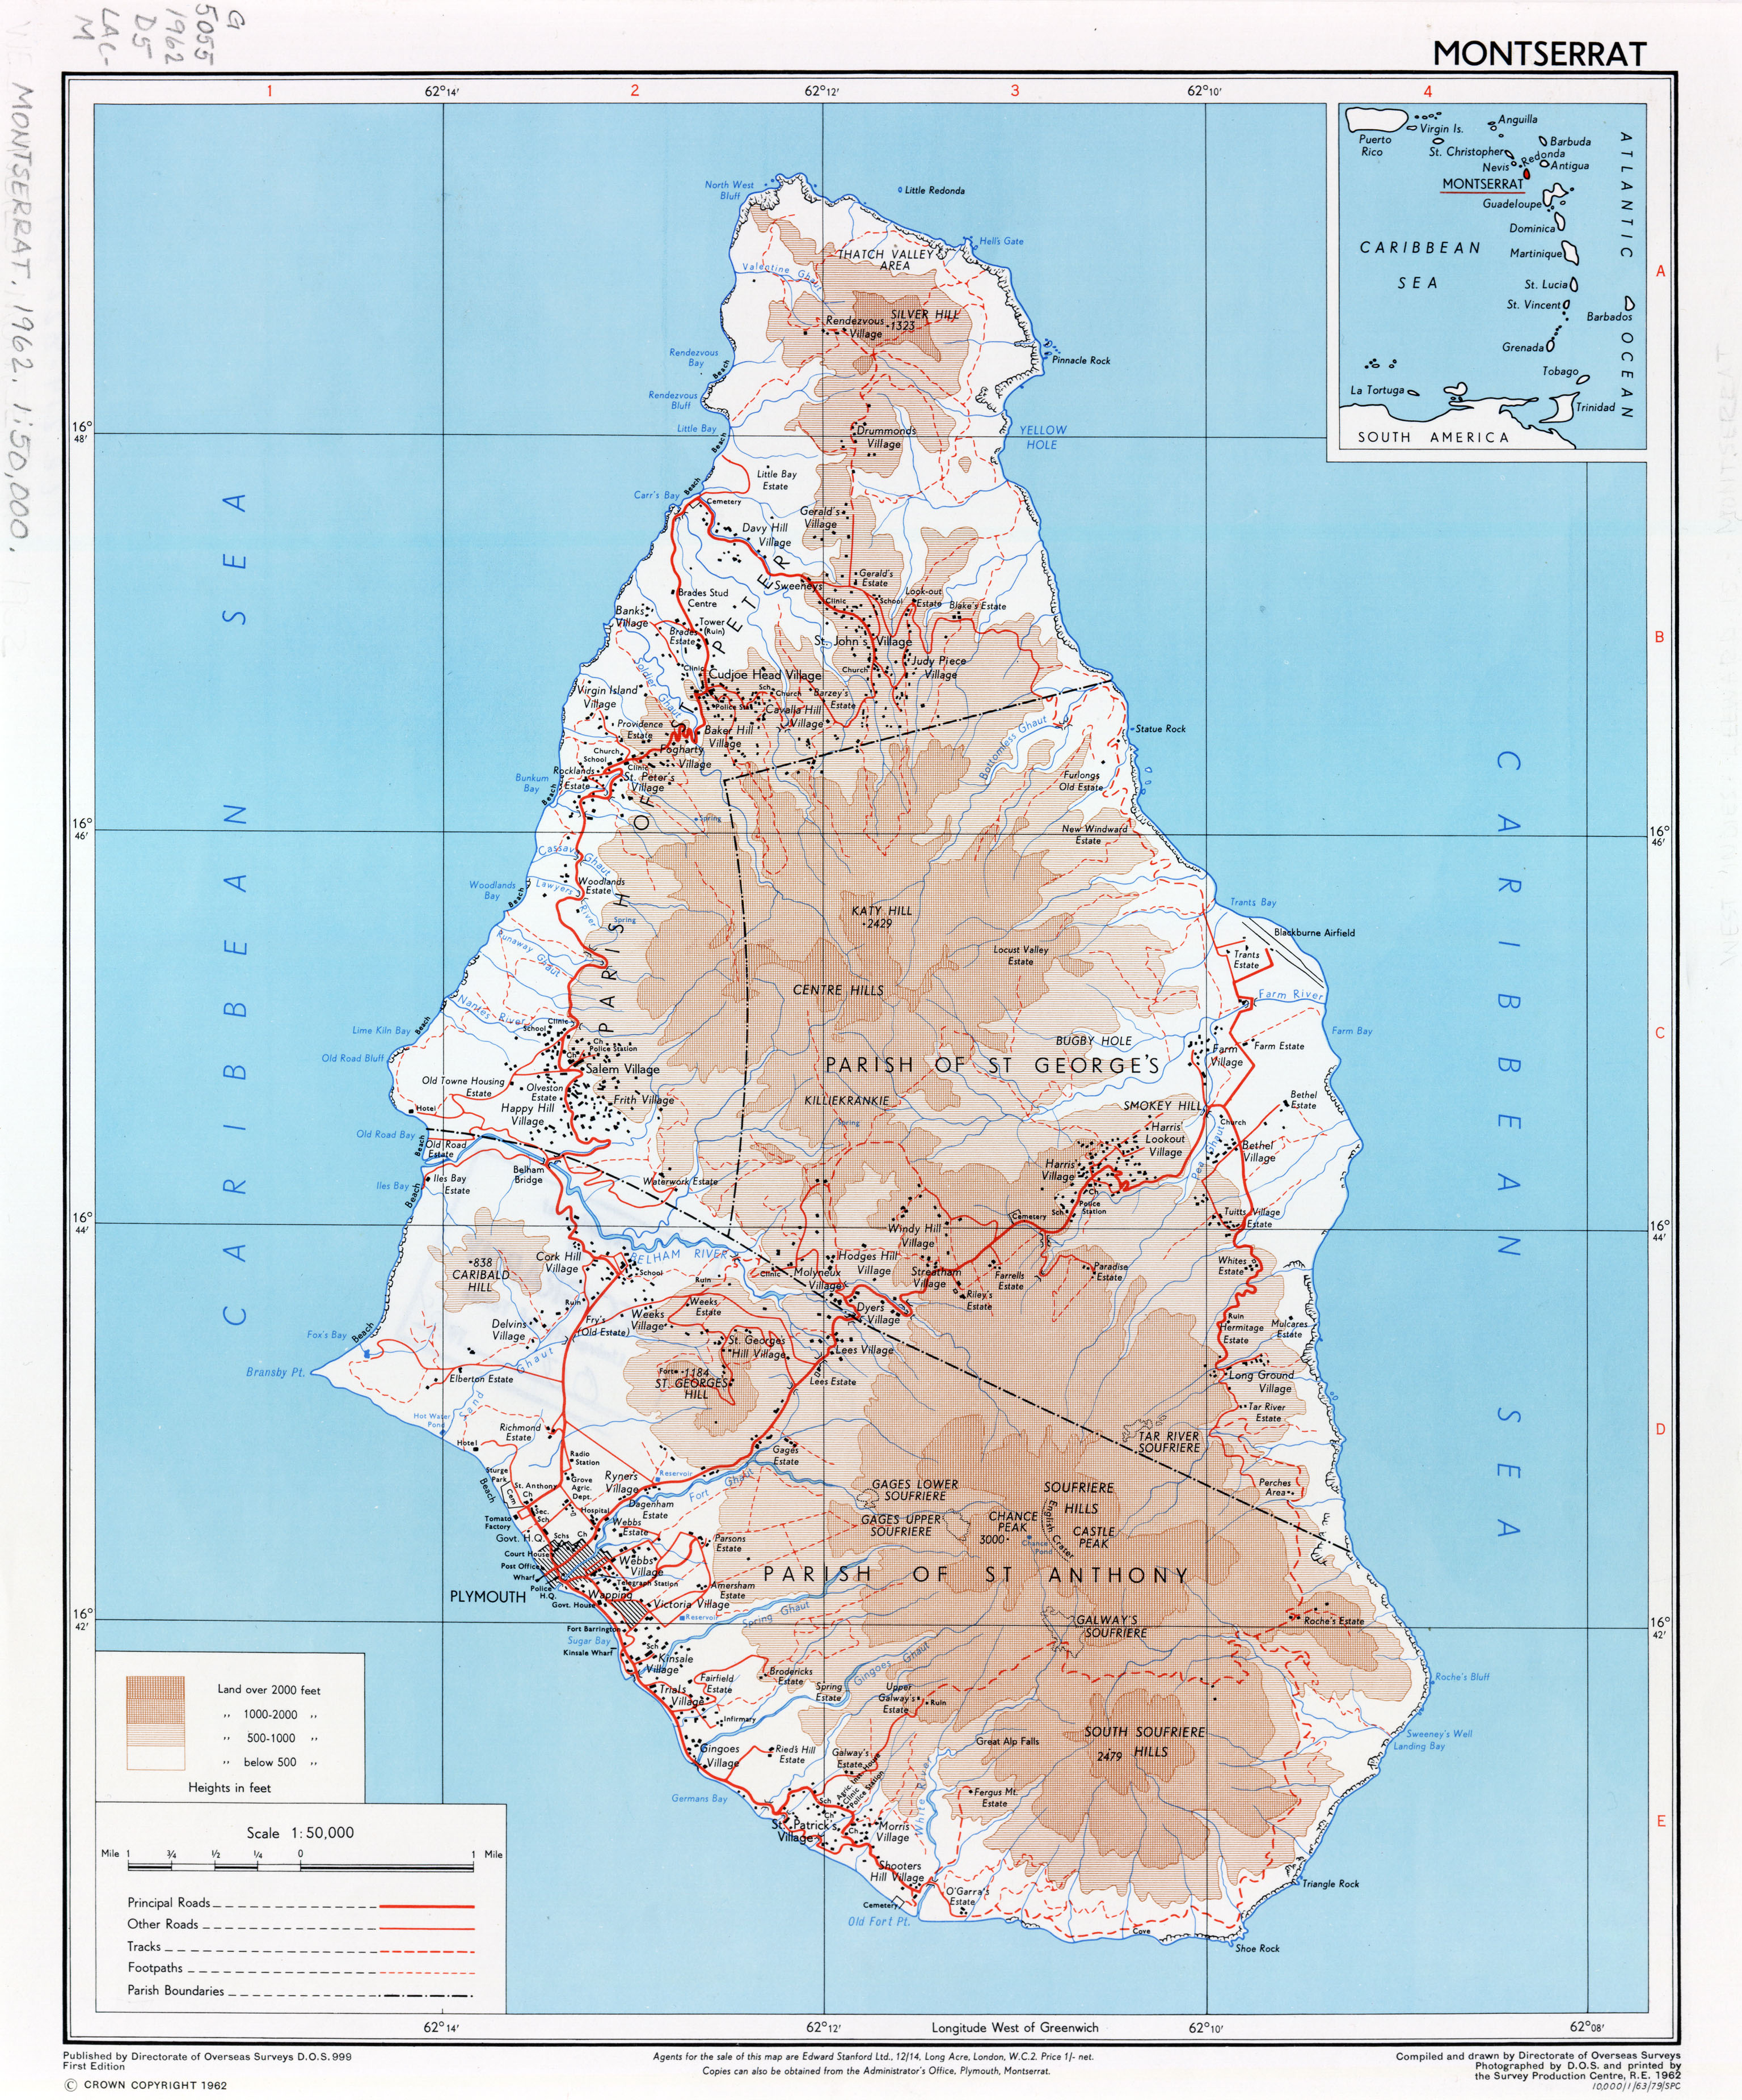 Americas Maps PerryCastañeda Map Collection UT Library Online - Road map of grenada island